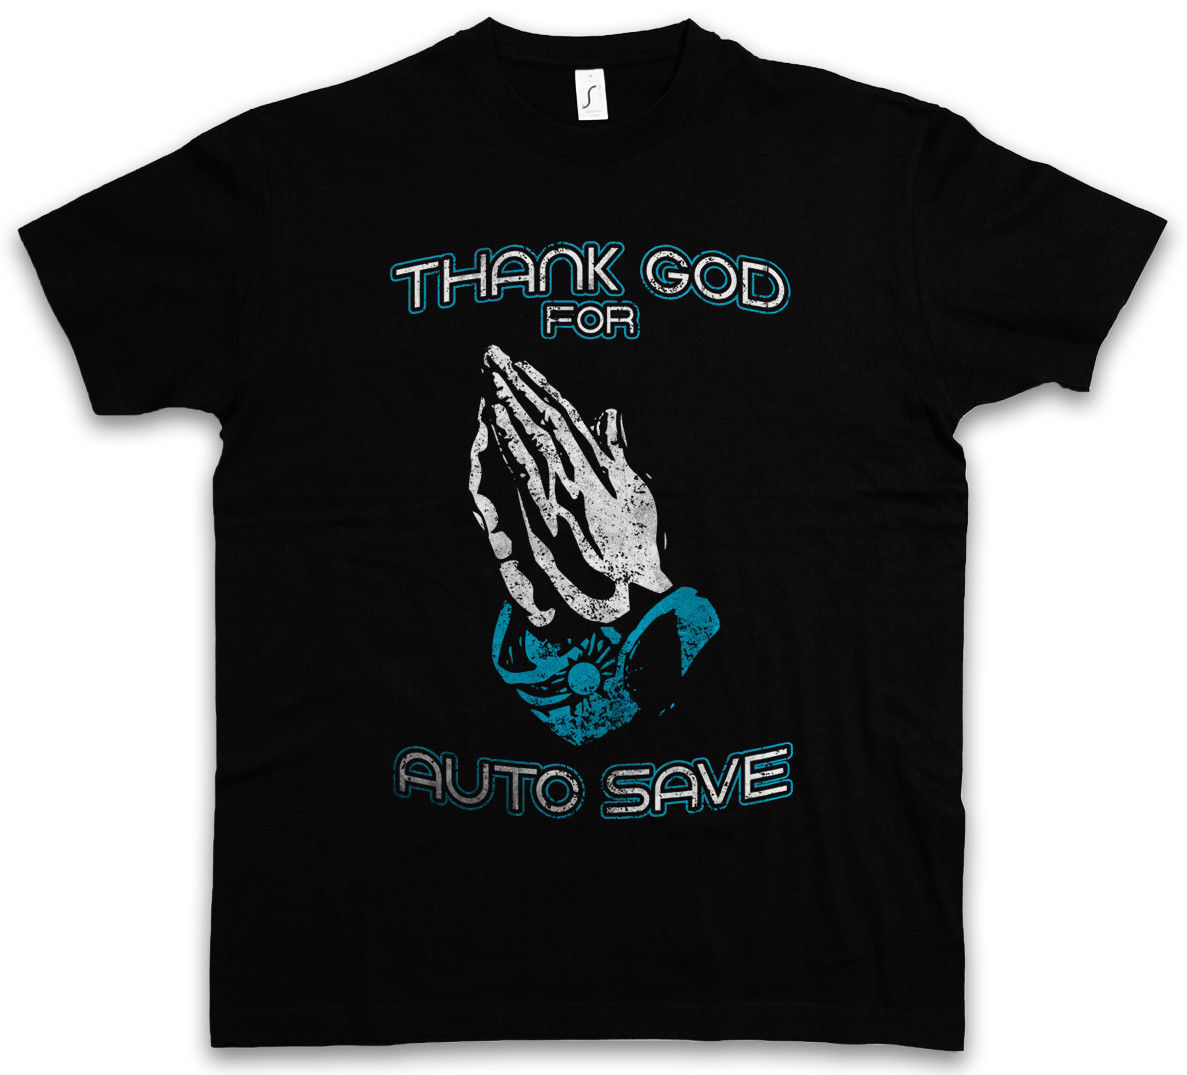 THANK GOD FOR AUTO SAVE T-SHIRT Autosave Fun computer scientist Gamer Gaming